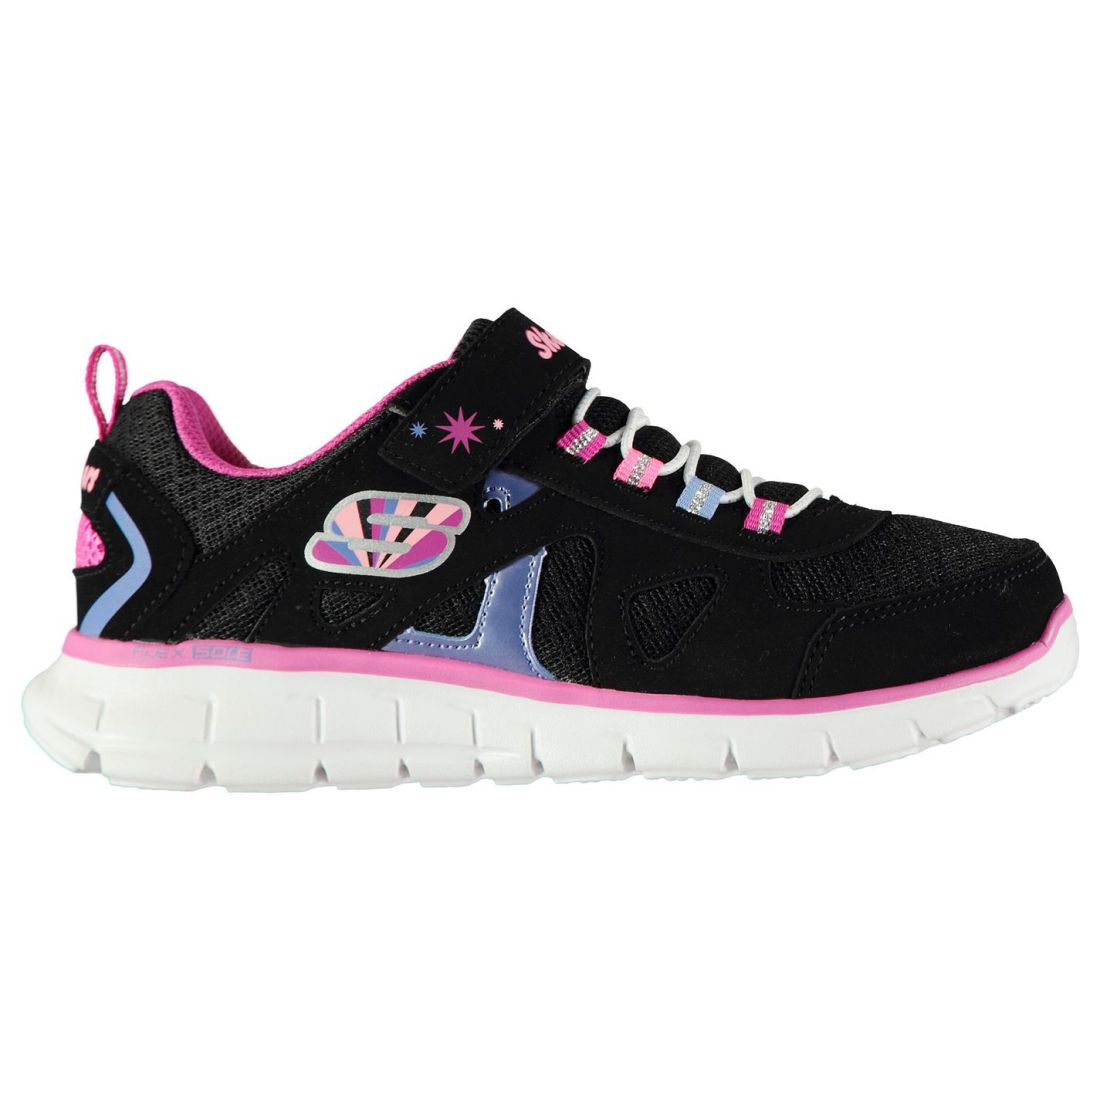 Skechers Vim Brite Childrens Sneakers Runners Elasticated Laces Strap Hook and